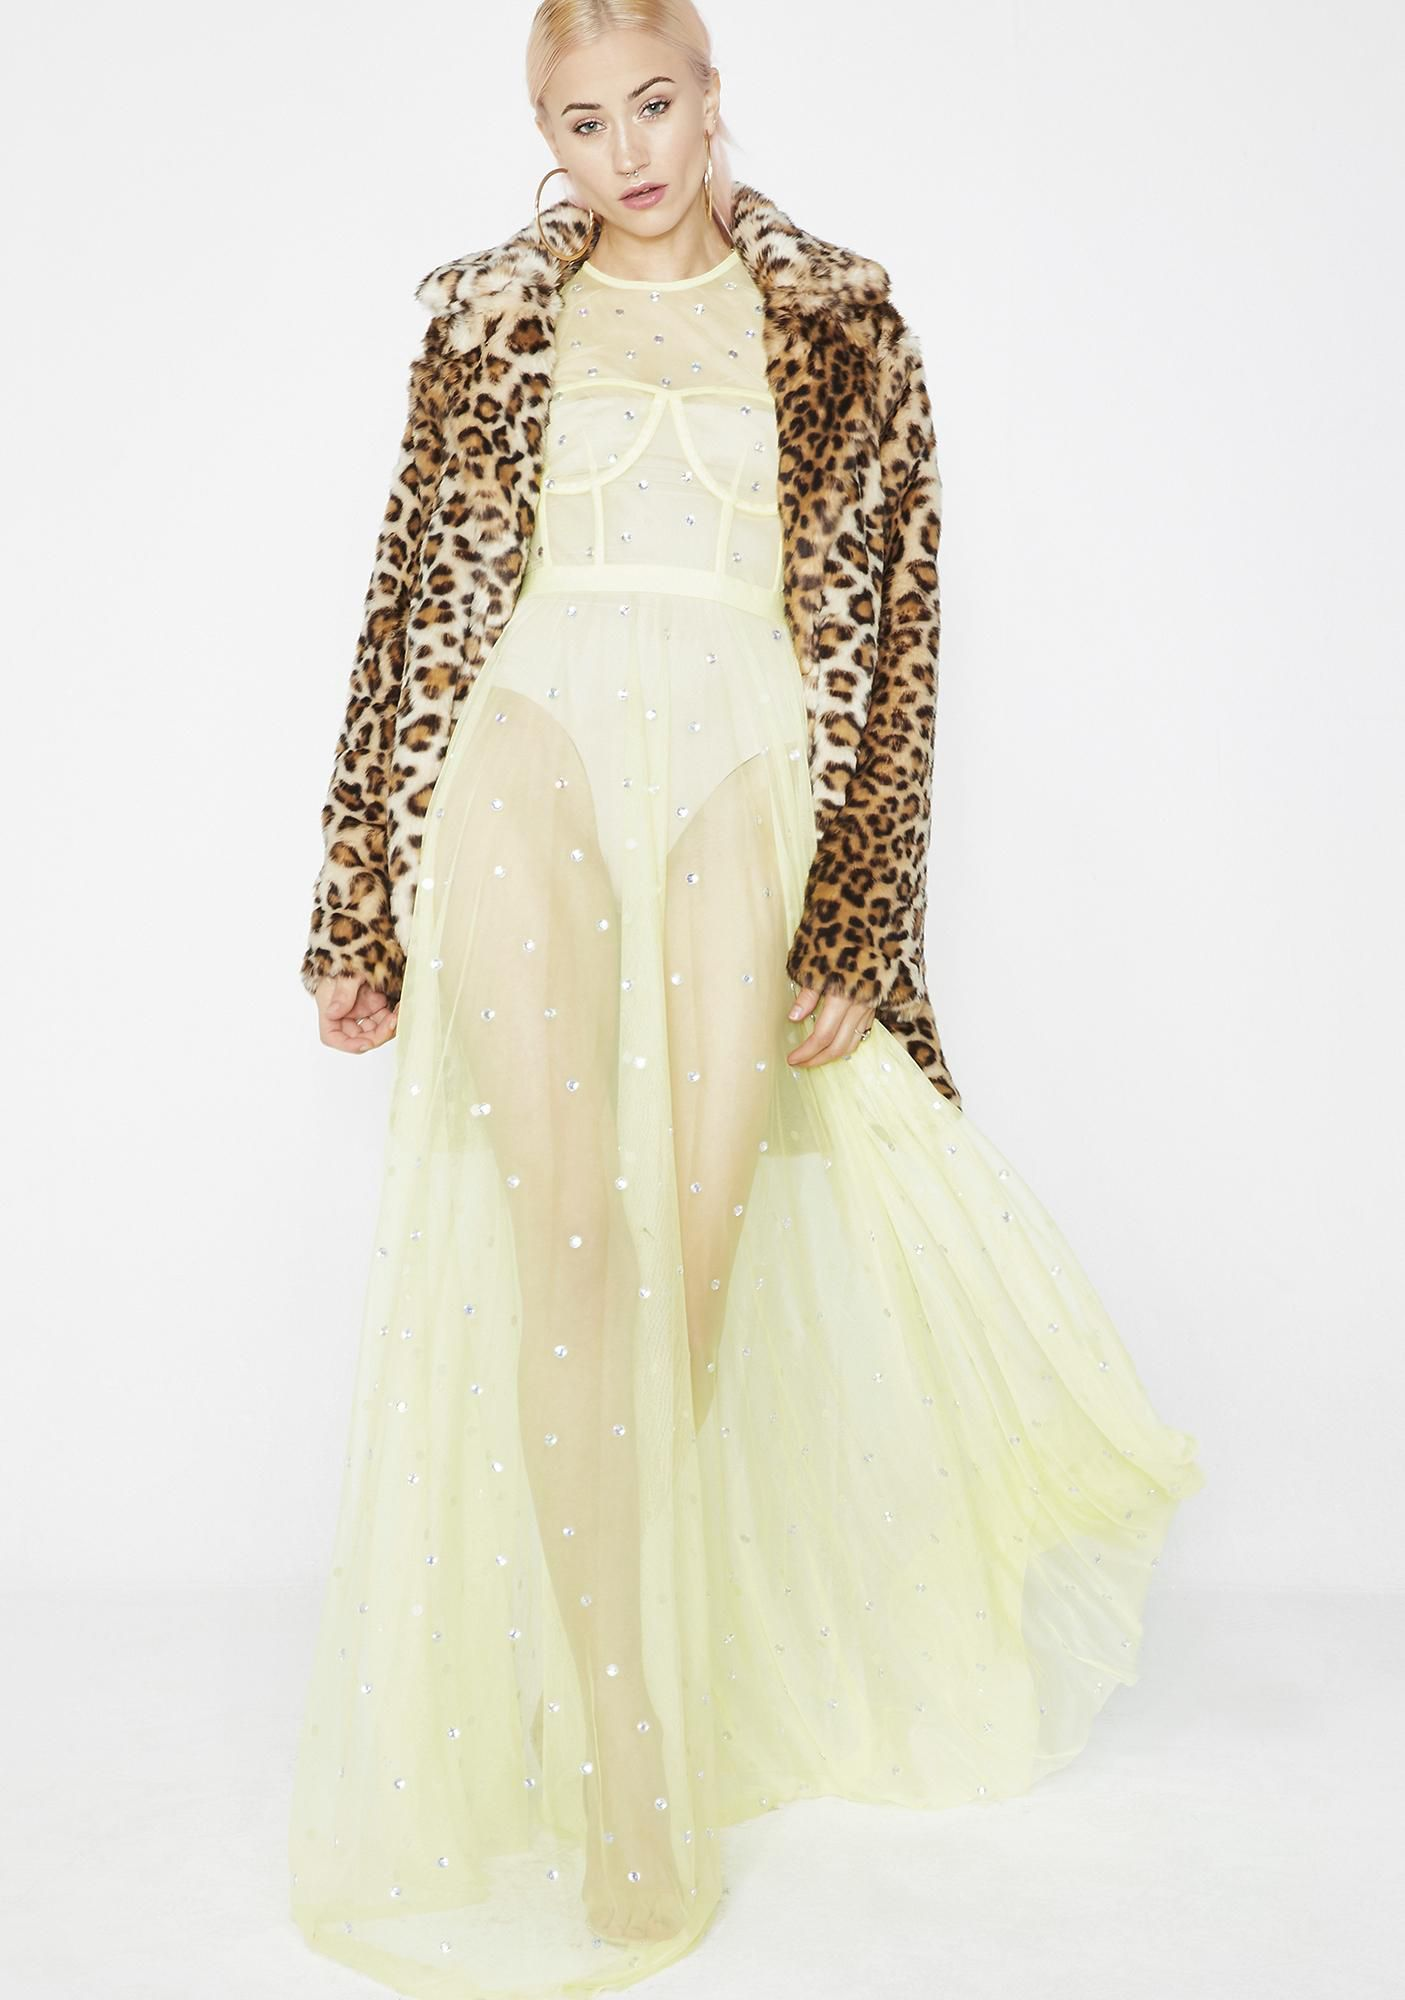 Good Places To Look For Homecoming Dresses Dacc